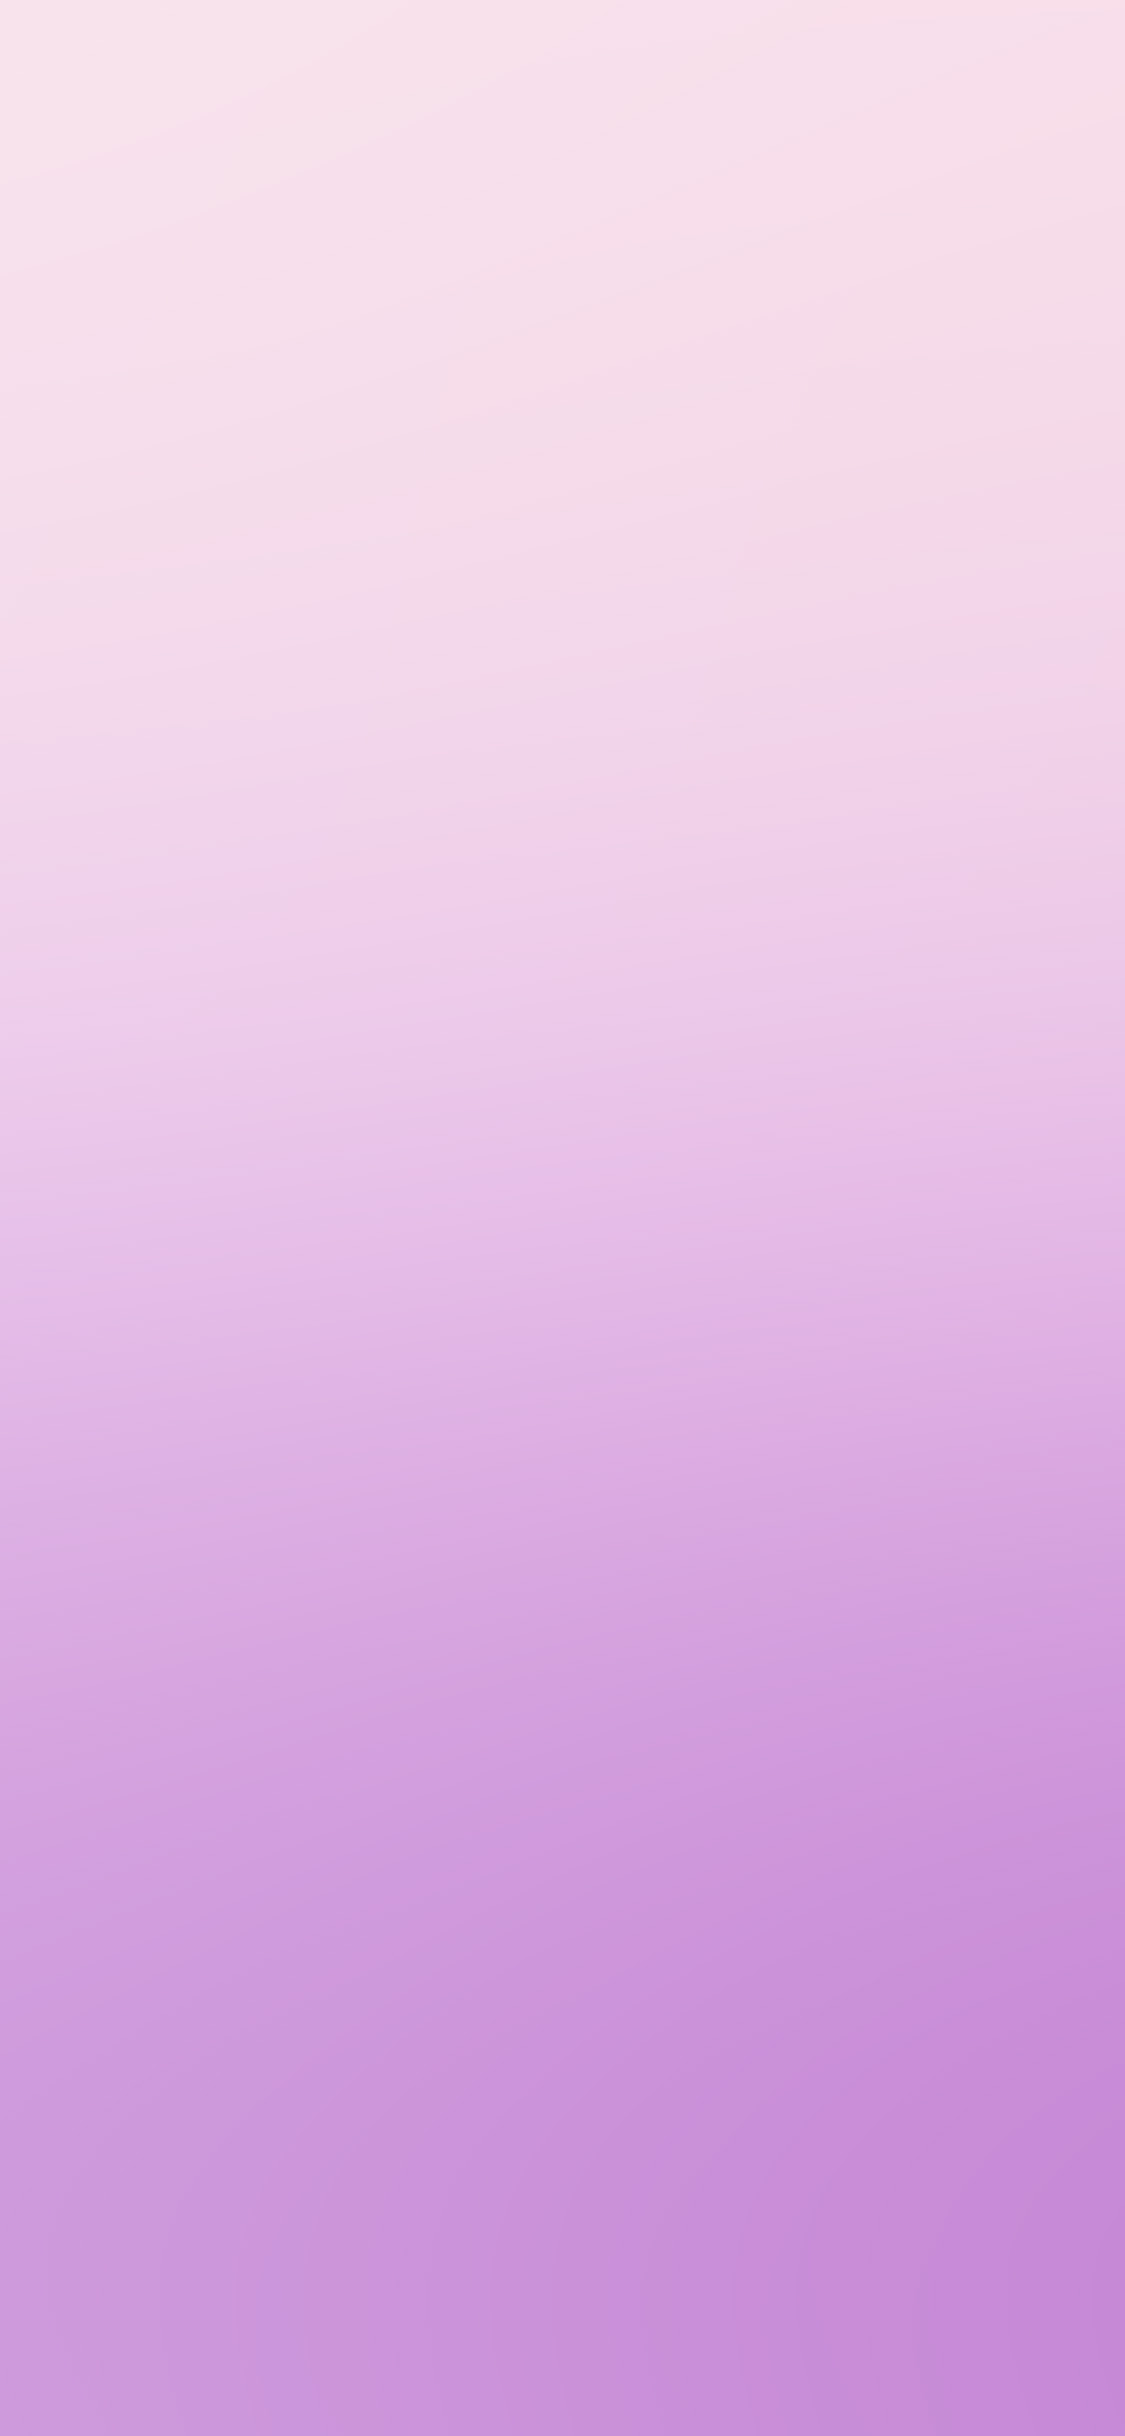 iPhonexpapers.com-Apple-iPhone-wallpaper-sm92-purple-red-blur-gradation-pastel-soft